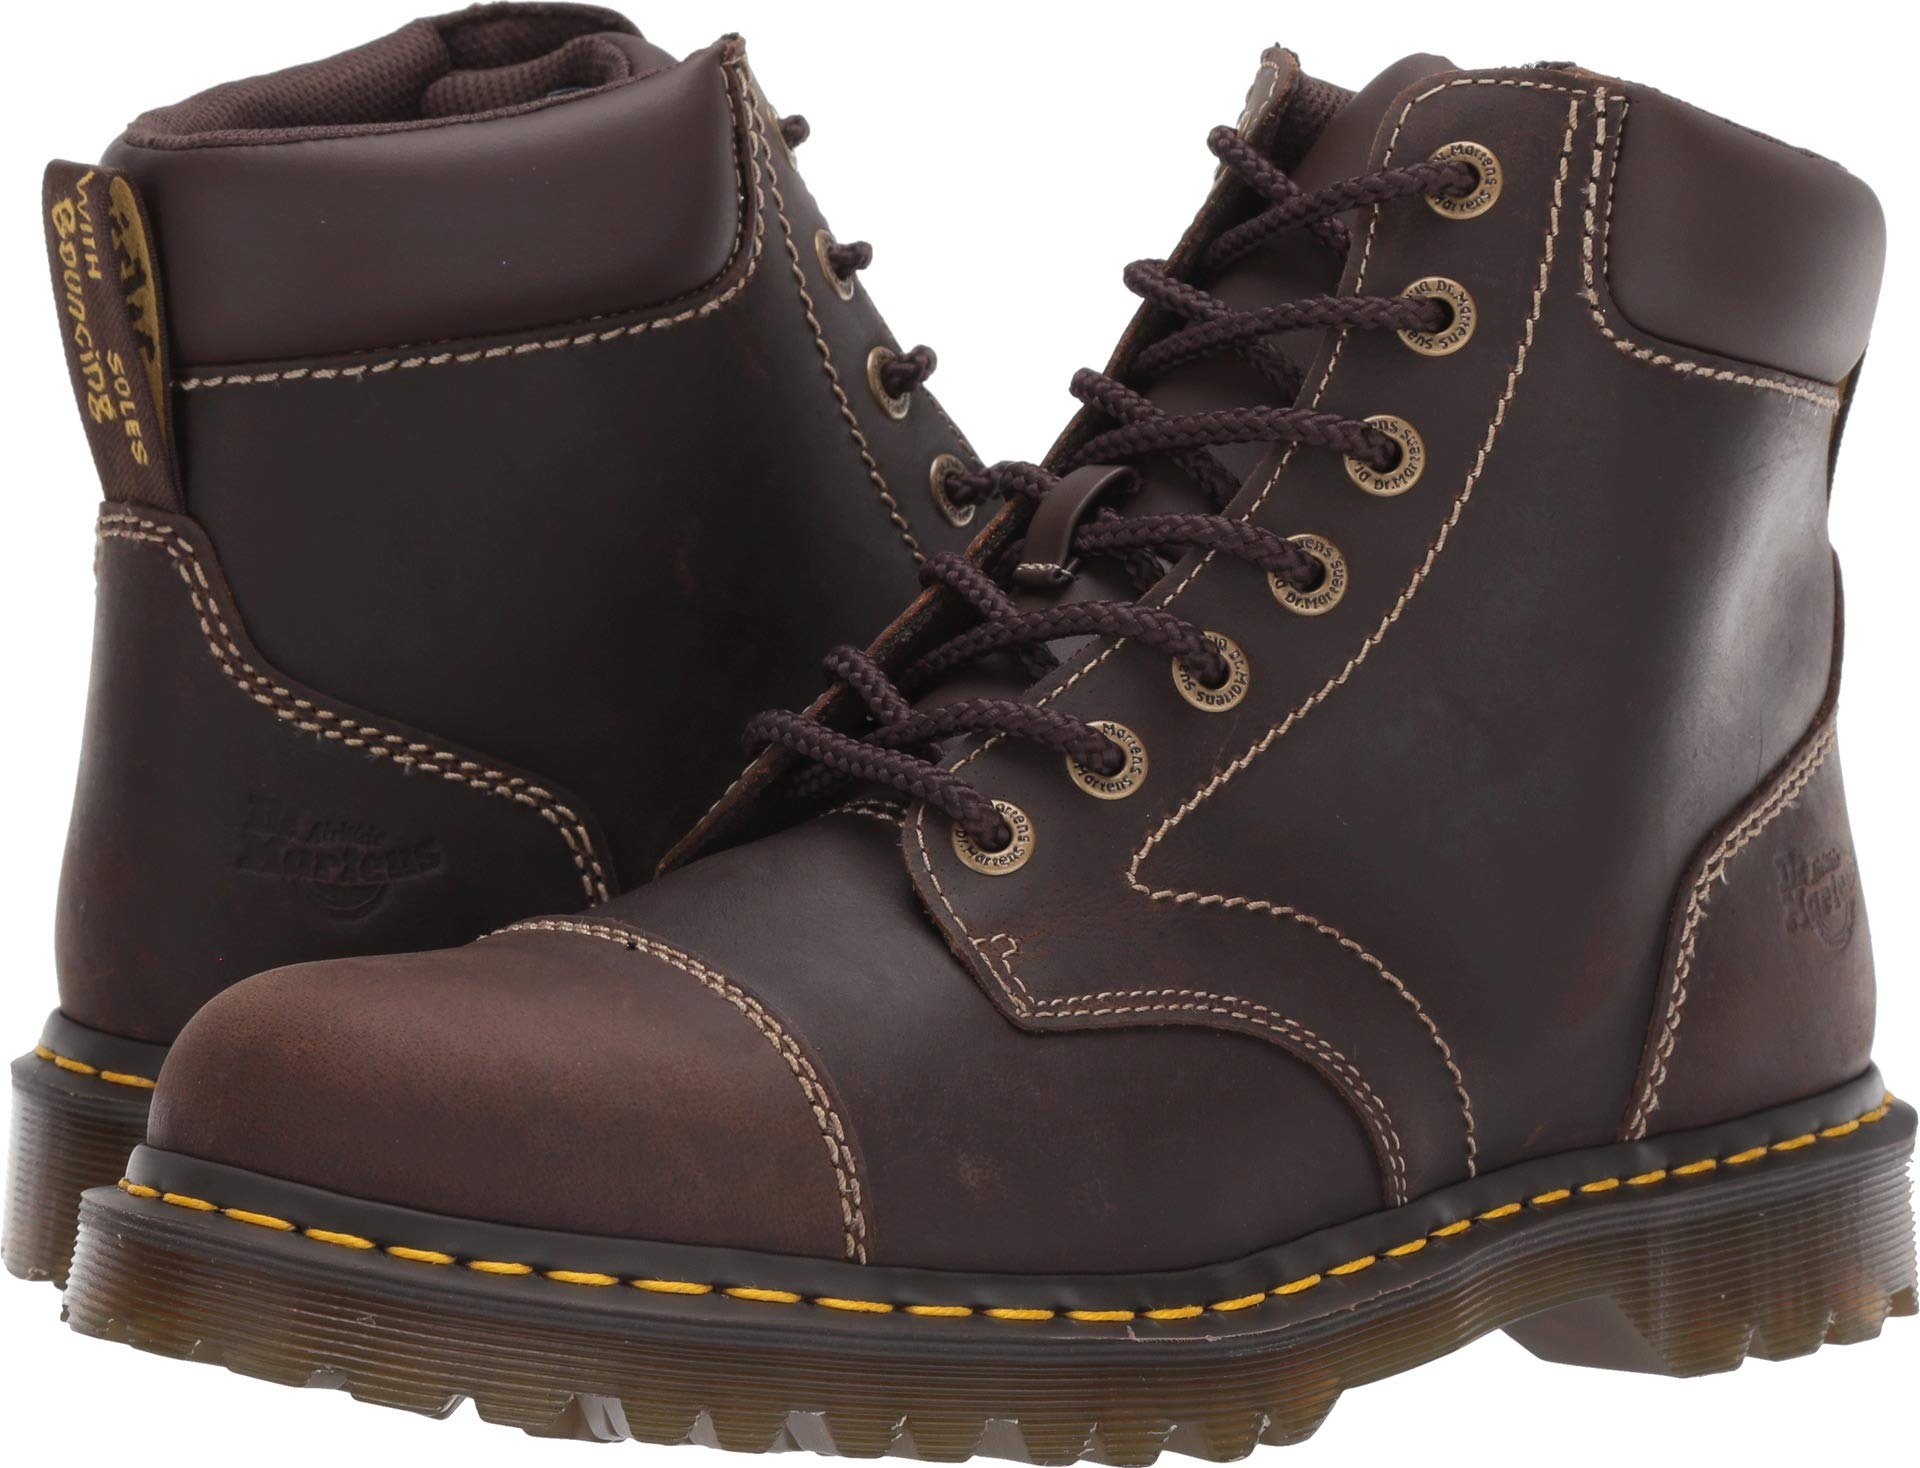 Dr. Martens Unisex-Adult Ranch Ns 7 Eye Boot, Size: 12 D(M) US / 11 F(M) UK / 13 B(M) US, Color: Brown Kingdom by Dr. Martens